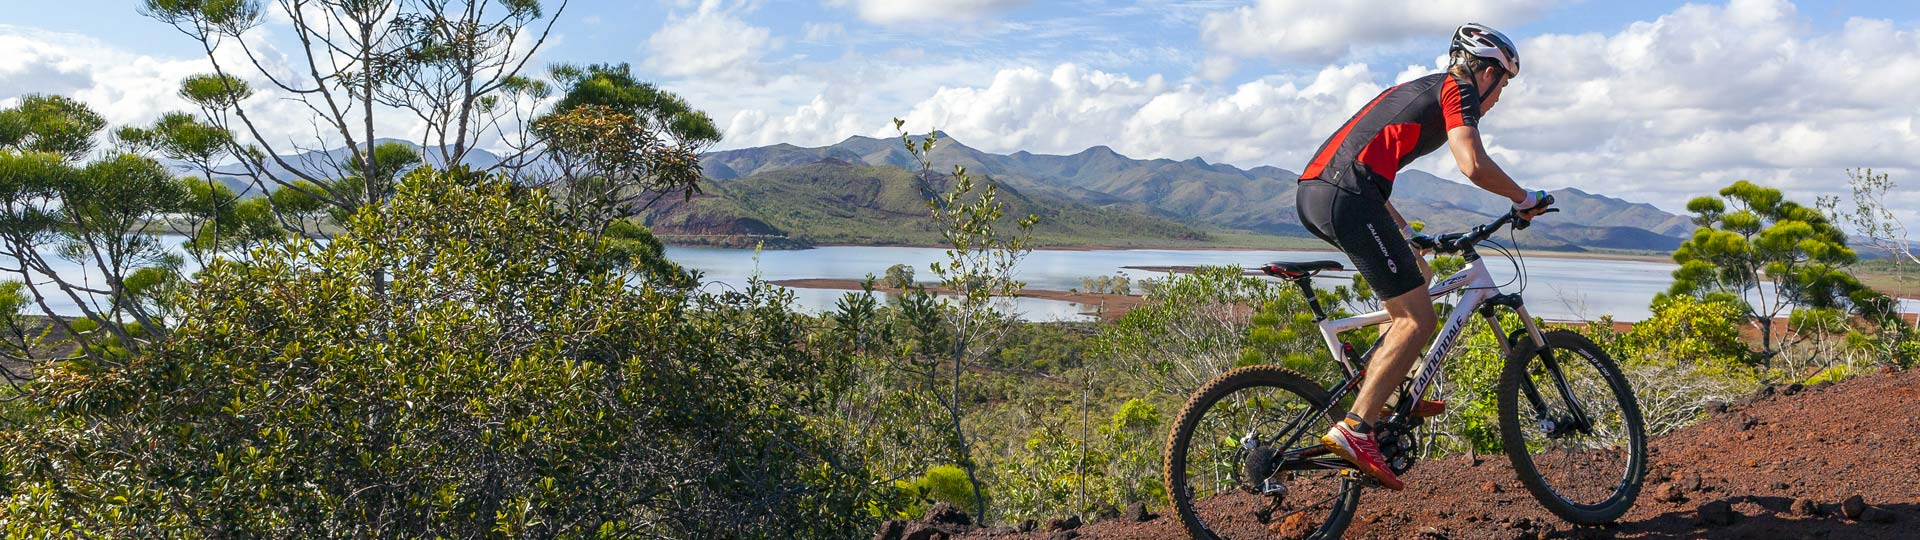 Mountain bike track in the Grand Sud in New Caledonia